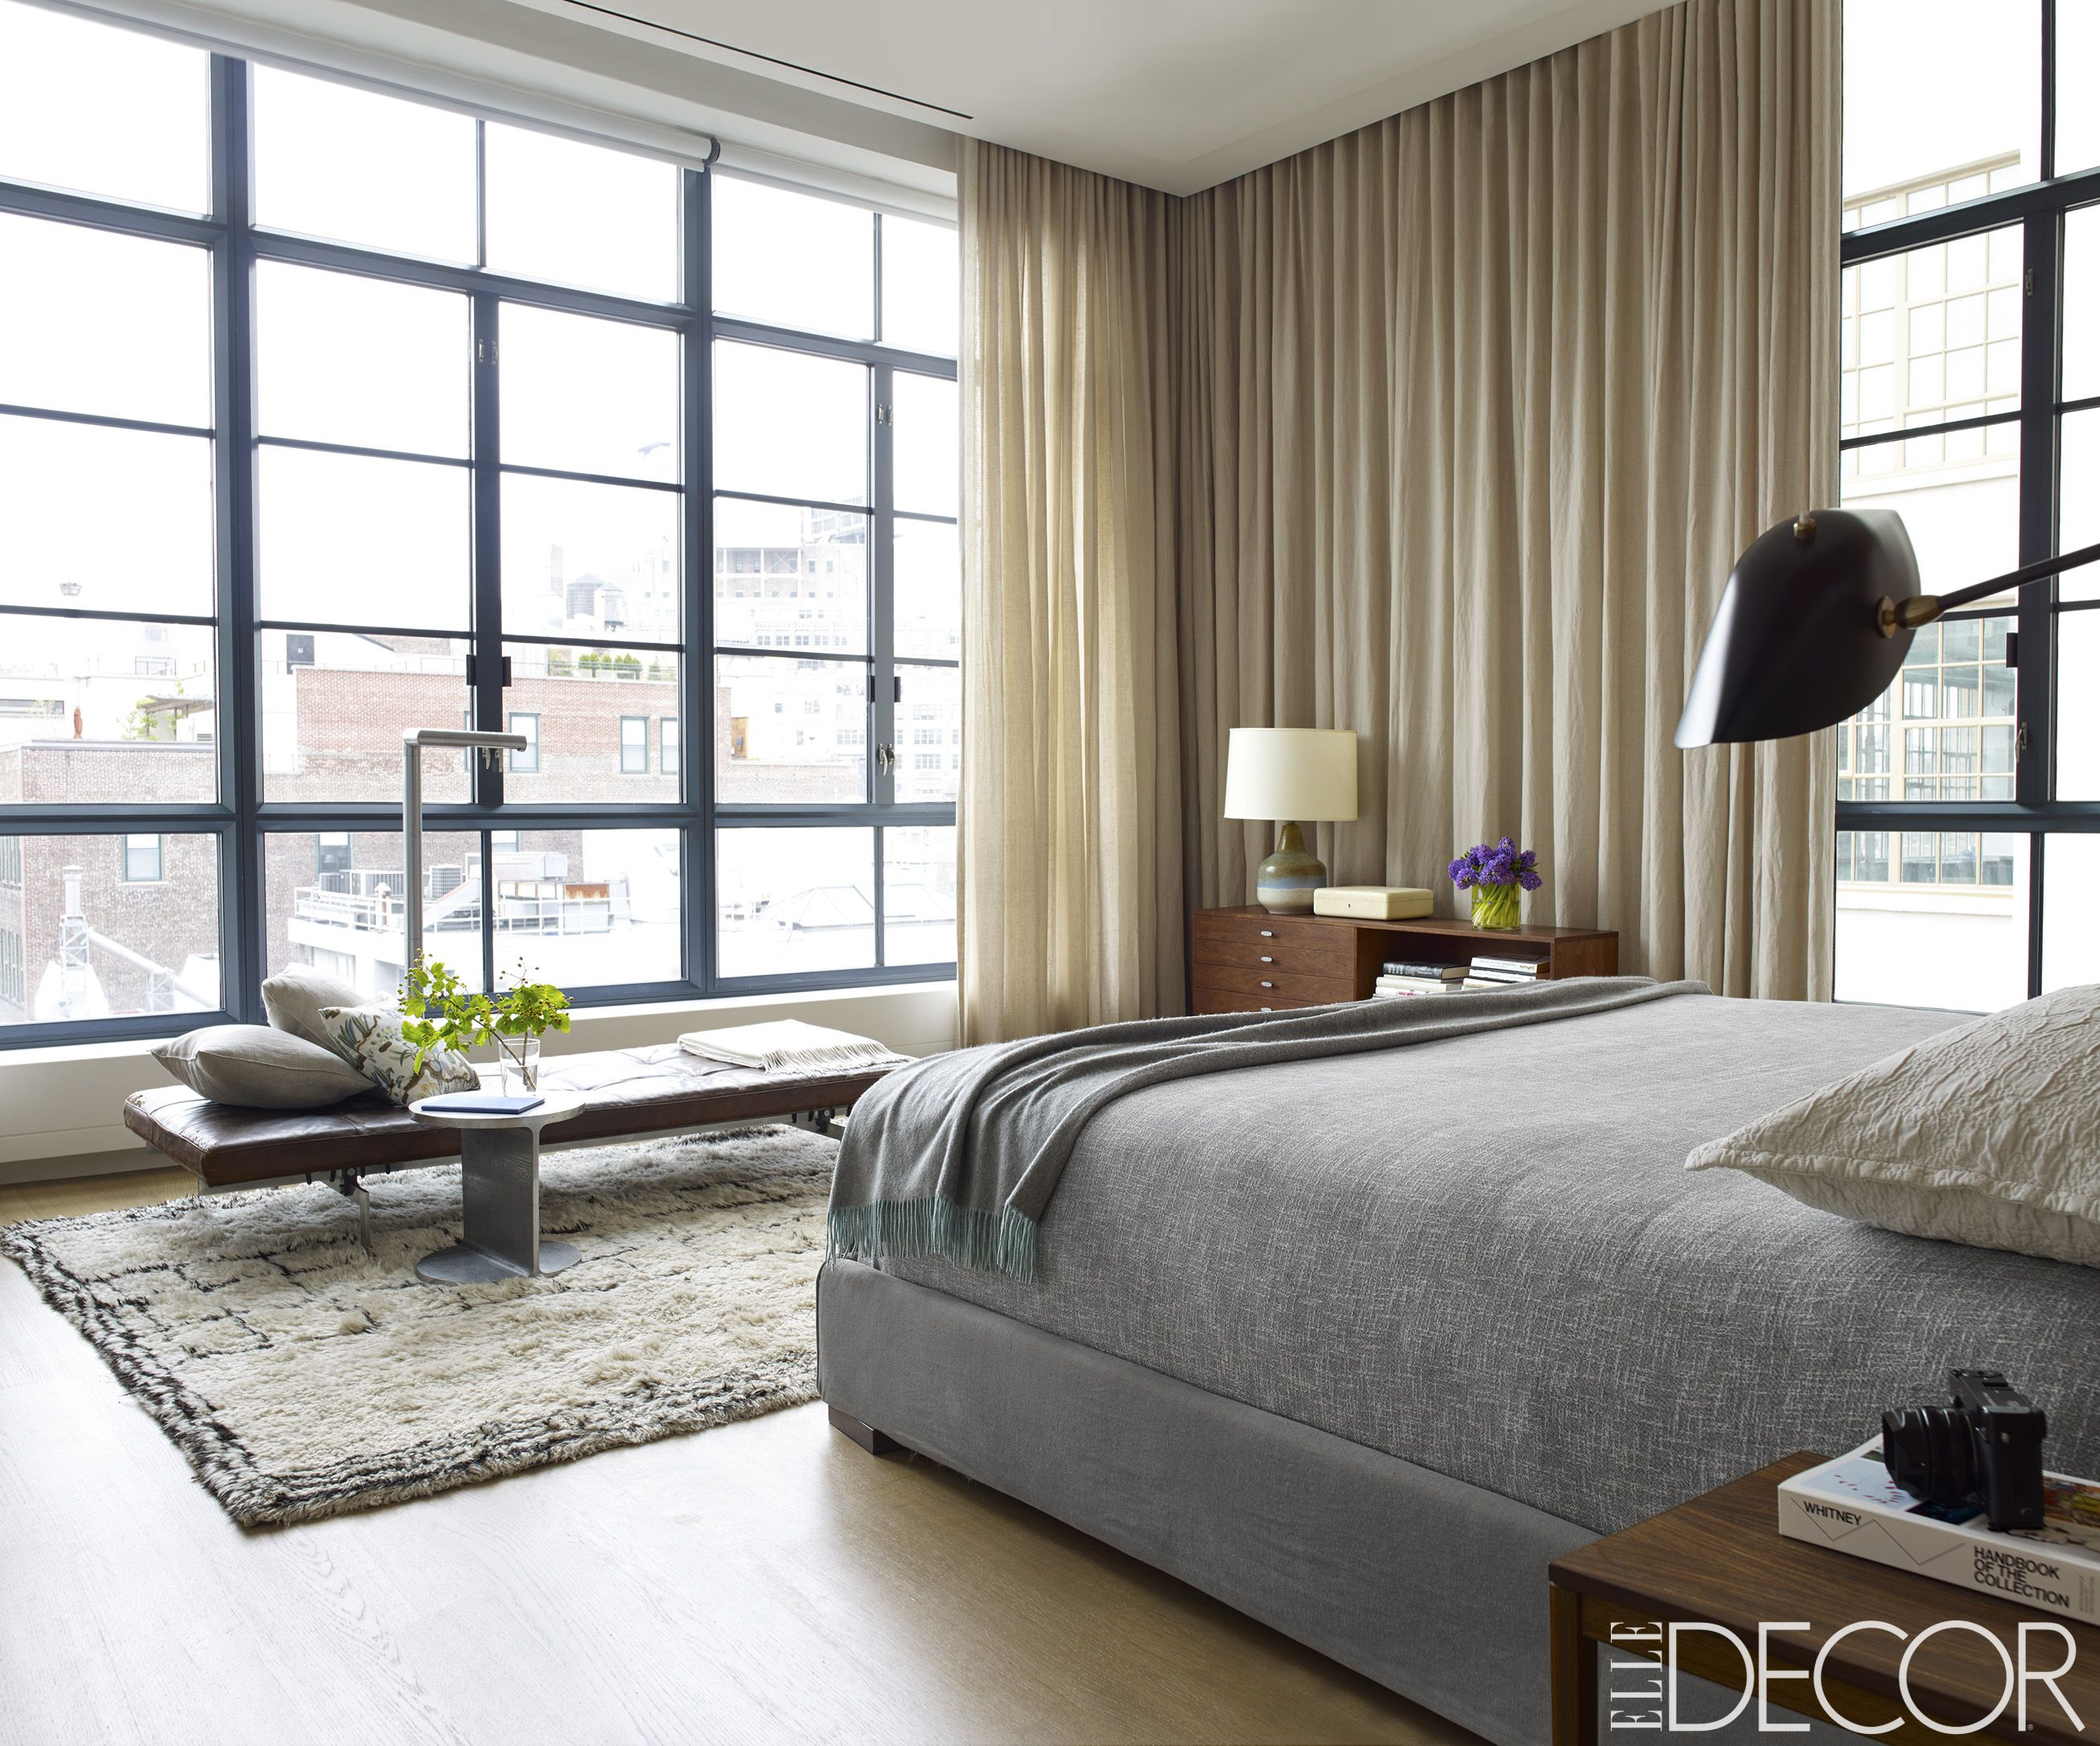 30+ Minimalist Bedroom Decor Ideas - Modern Designs for Minimalist ...